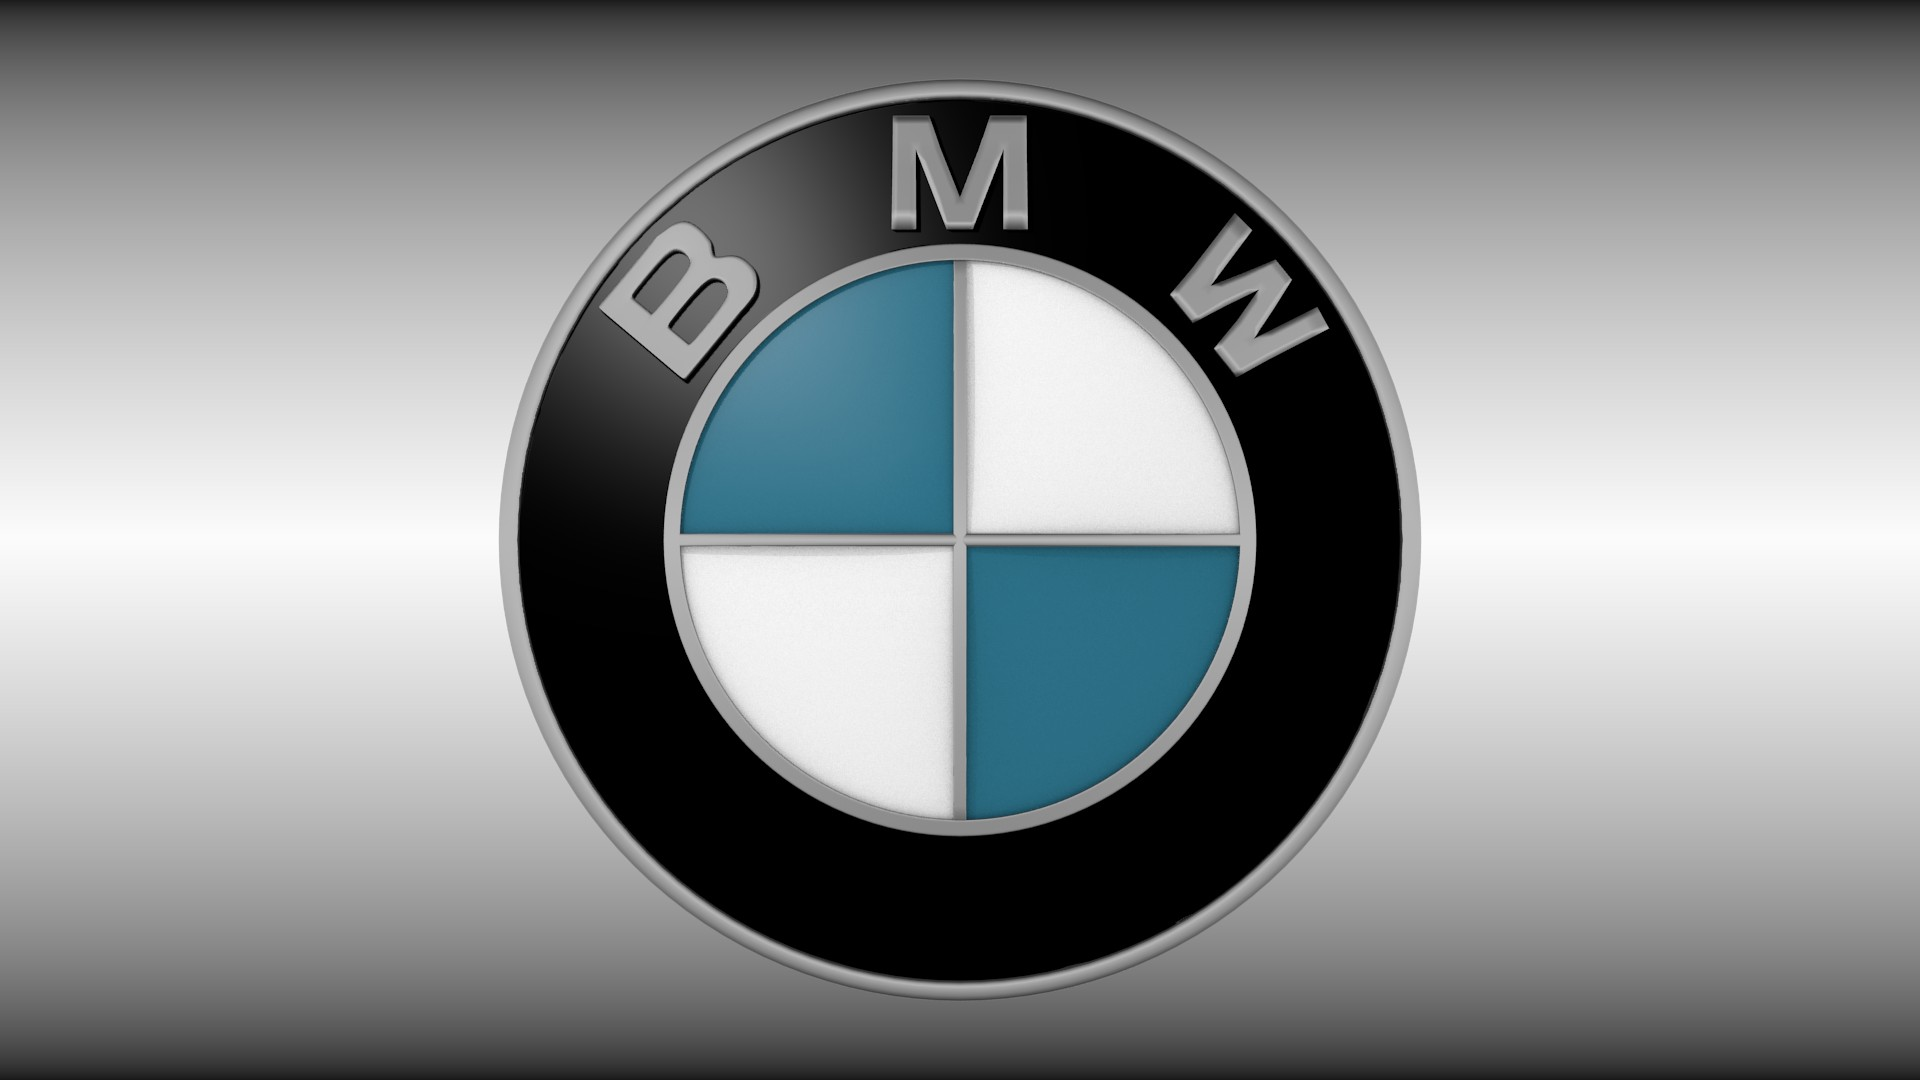 BMW Logo High Definition Wallpapers 1080p 1920x1080